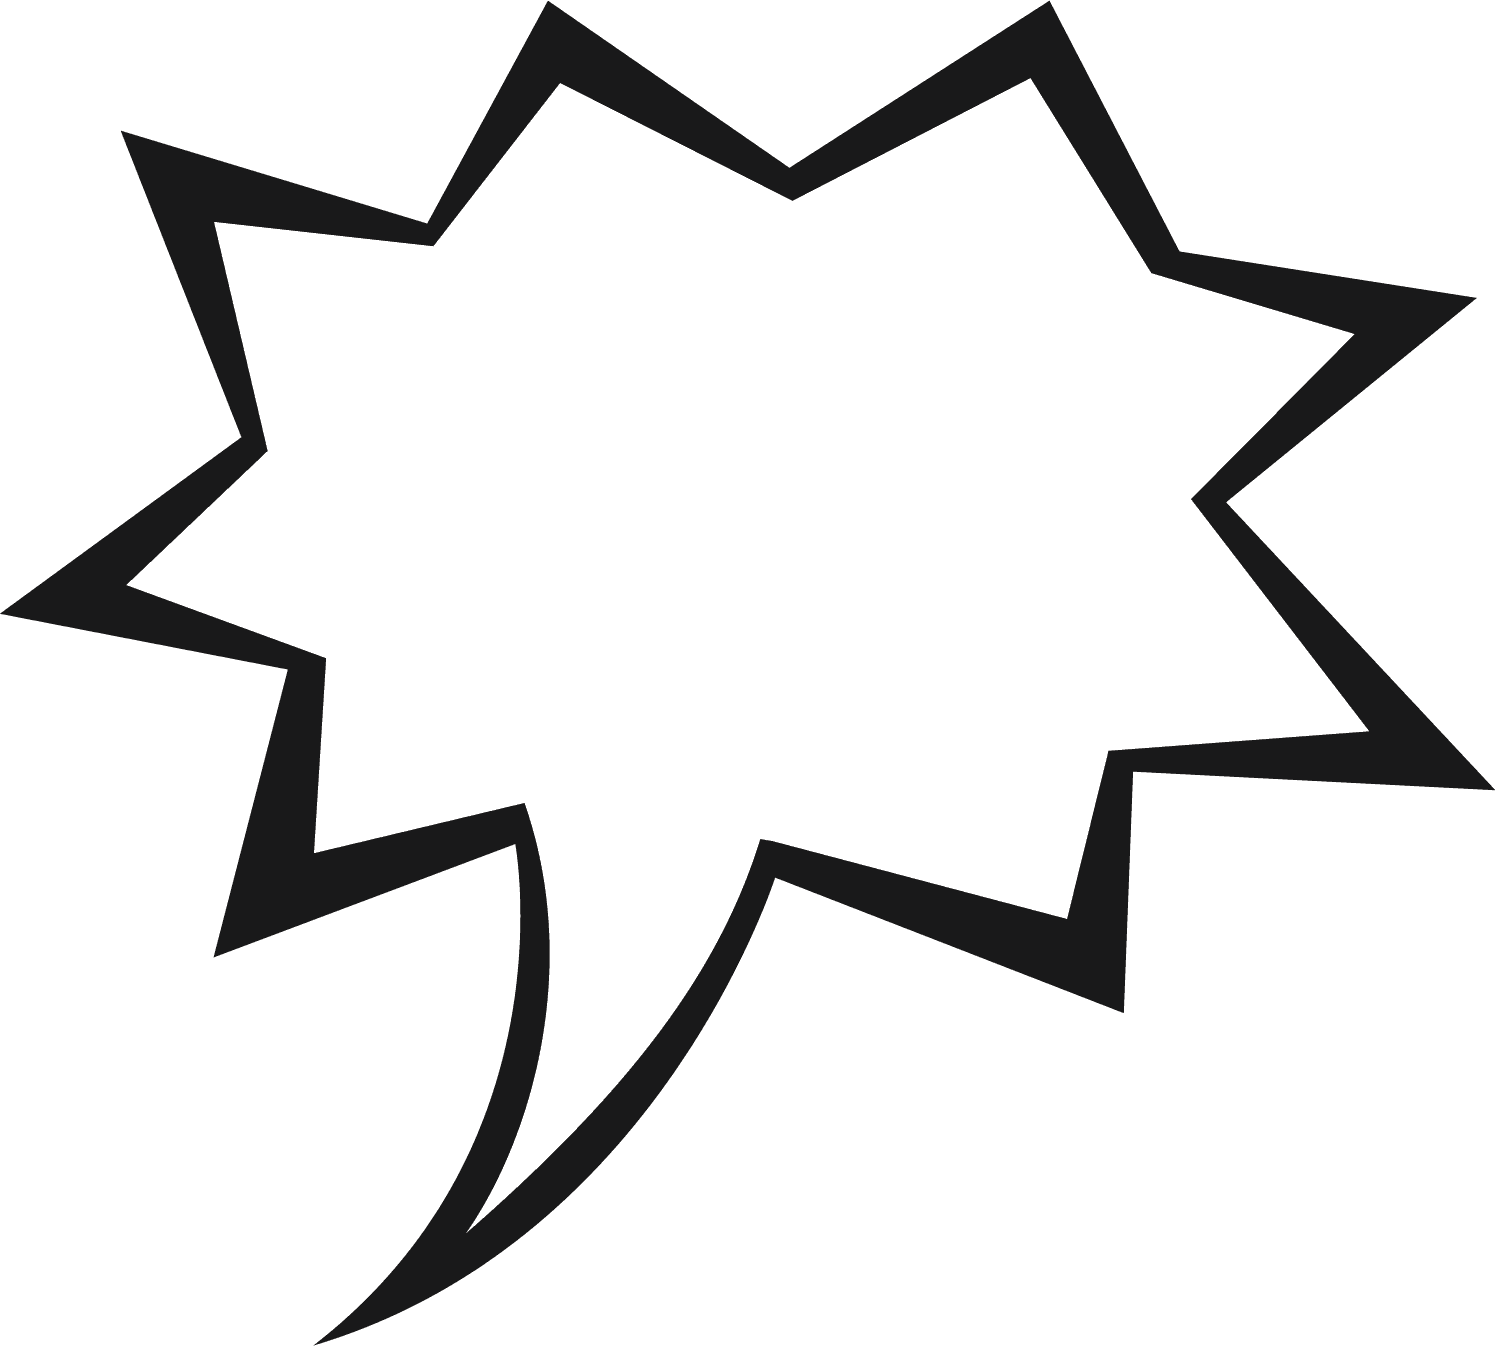 Conversation clipart speech bubble. Transparent png stickpng cartoon